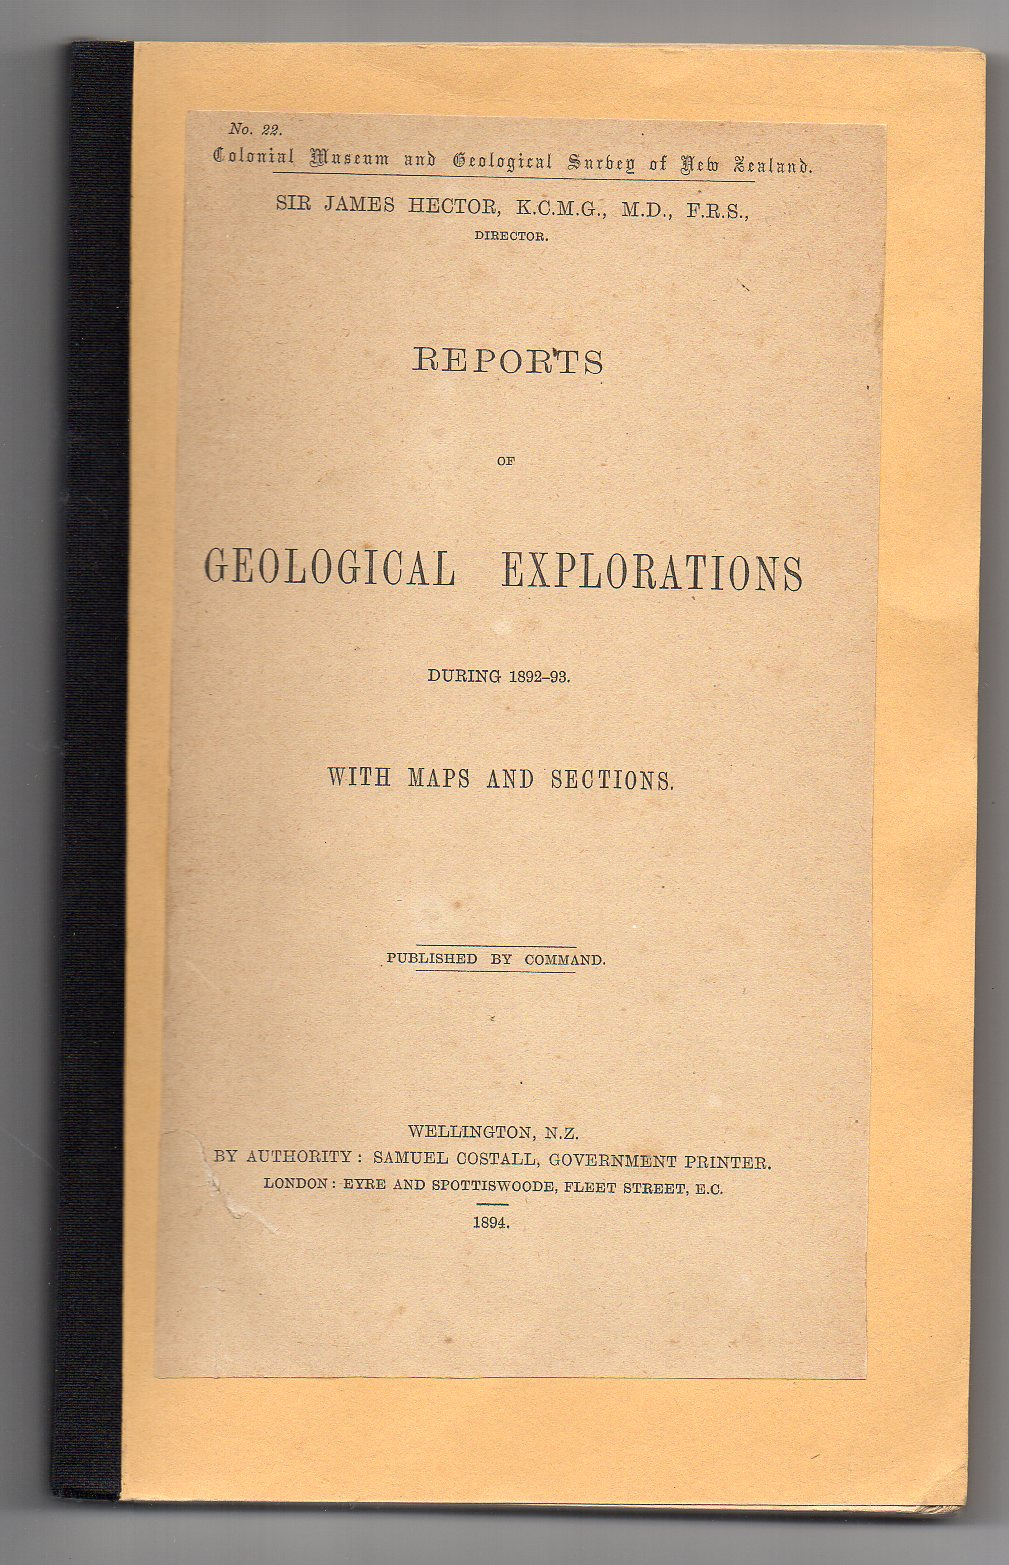 Image for Reports of Geological Explorations during 1892-93. With Maps and Sections.